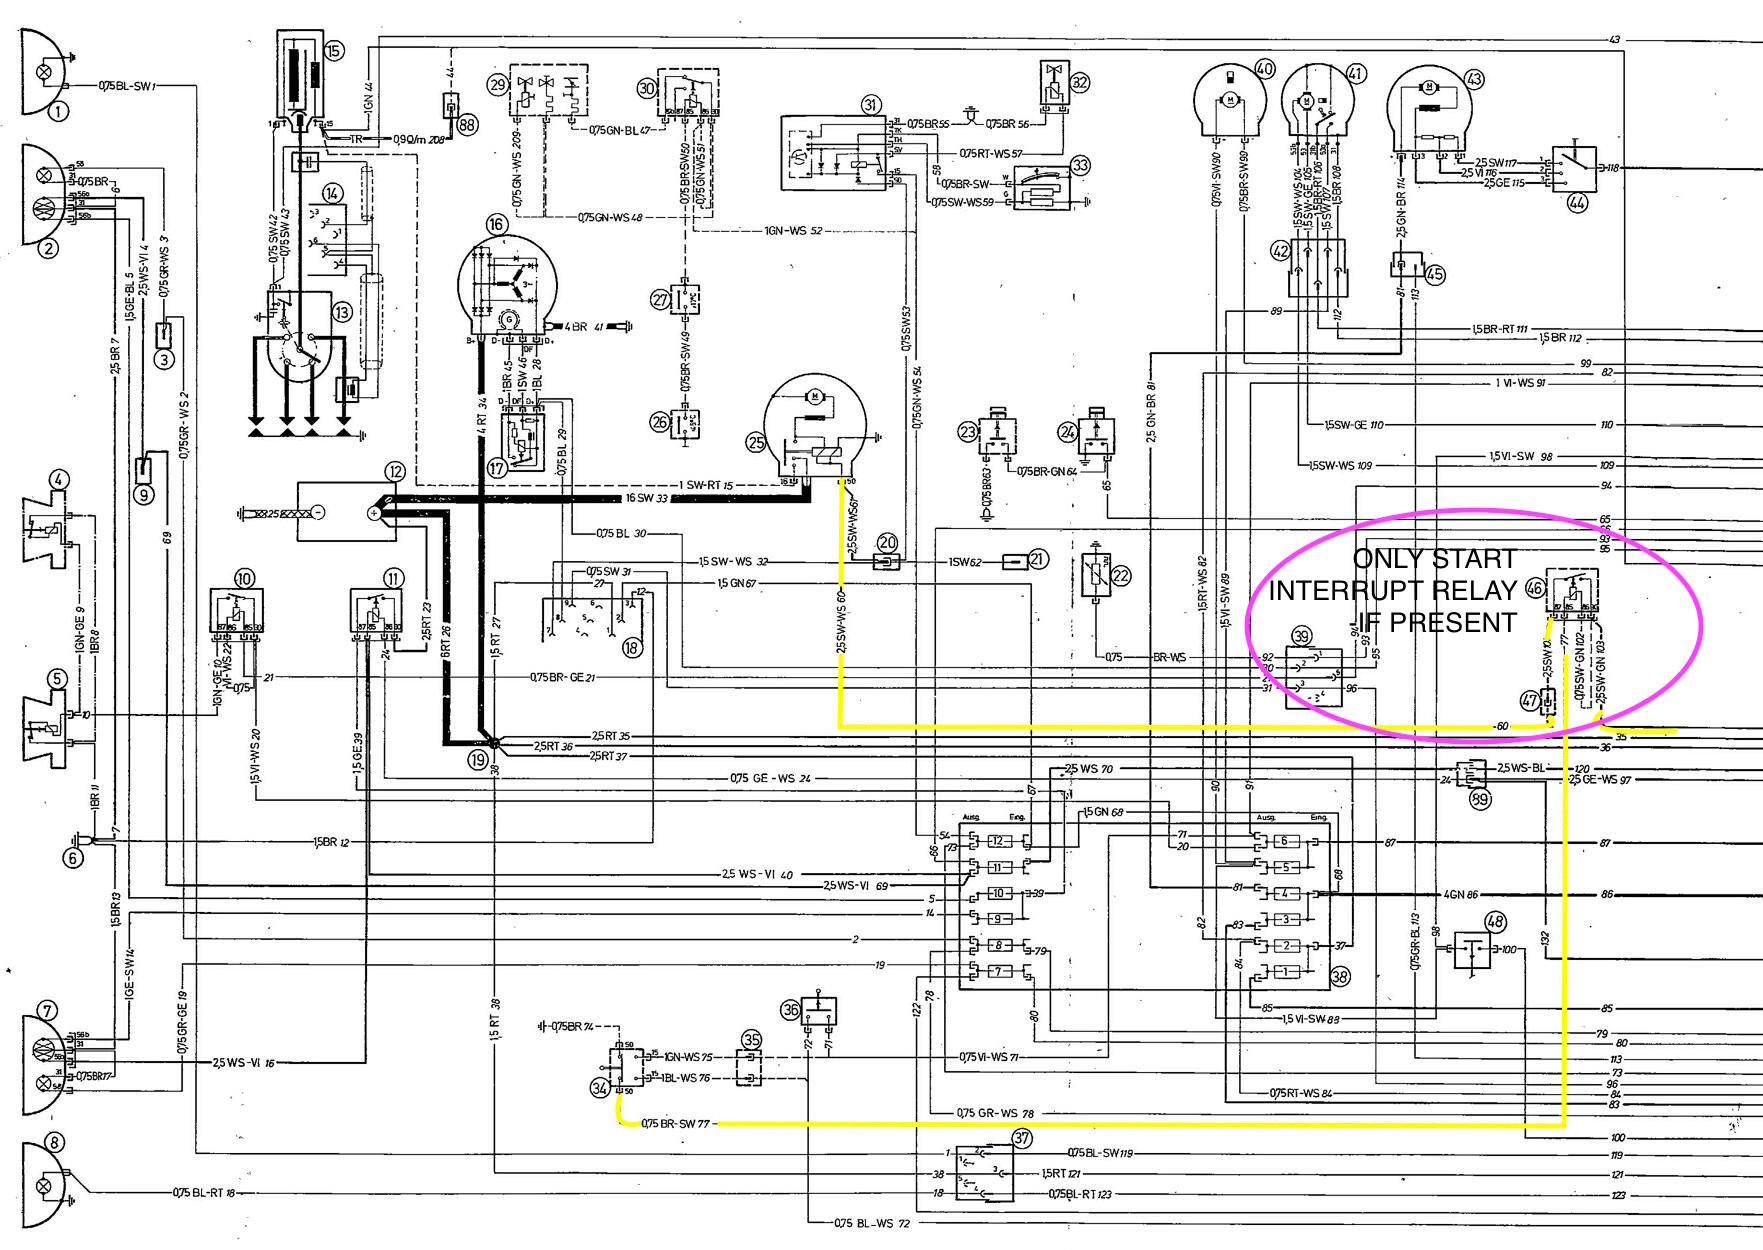 hight resolution of 1973 bmw 2002 wiring diagram wiring diagram name 1972 bmw 2002 wiring diagram my wiring diagram